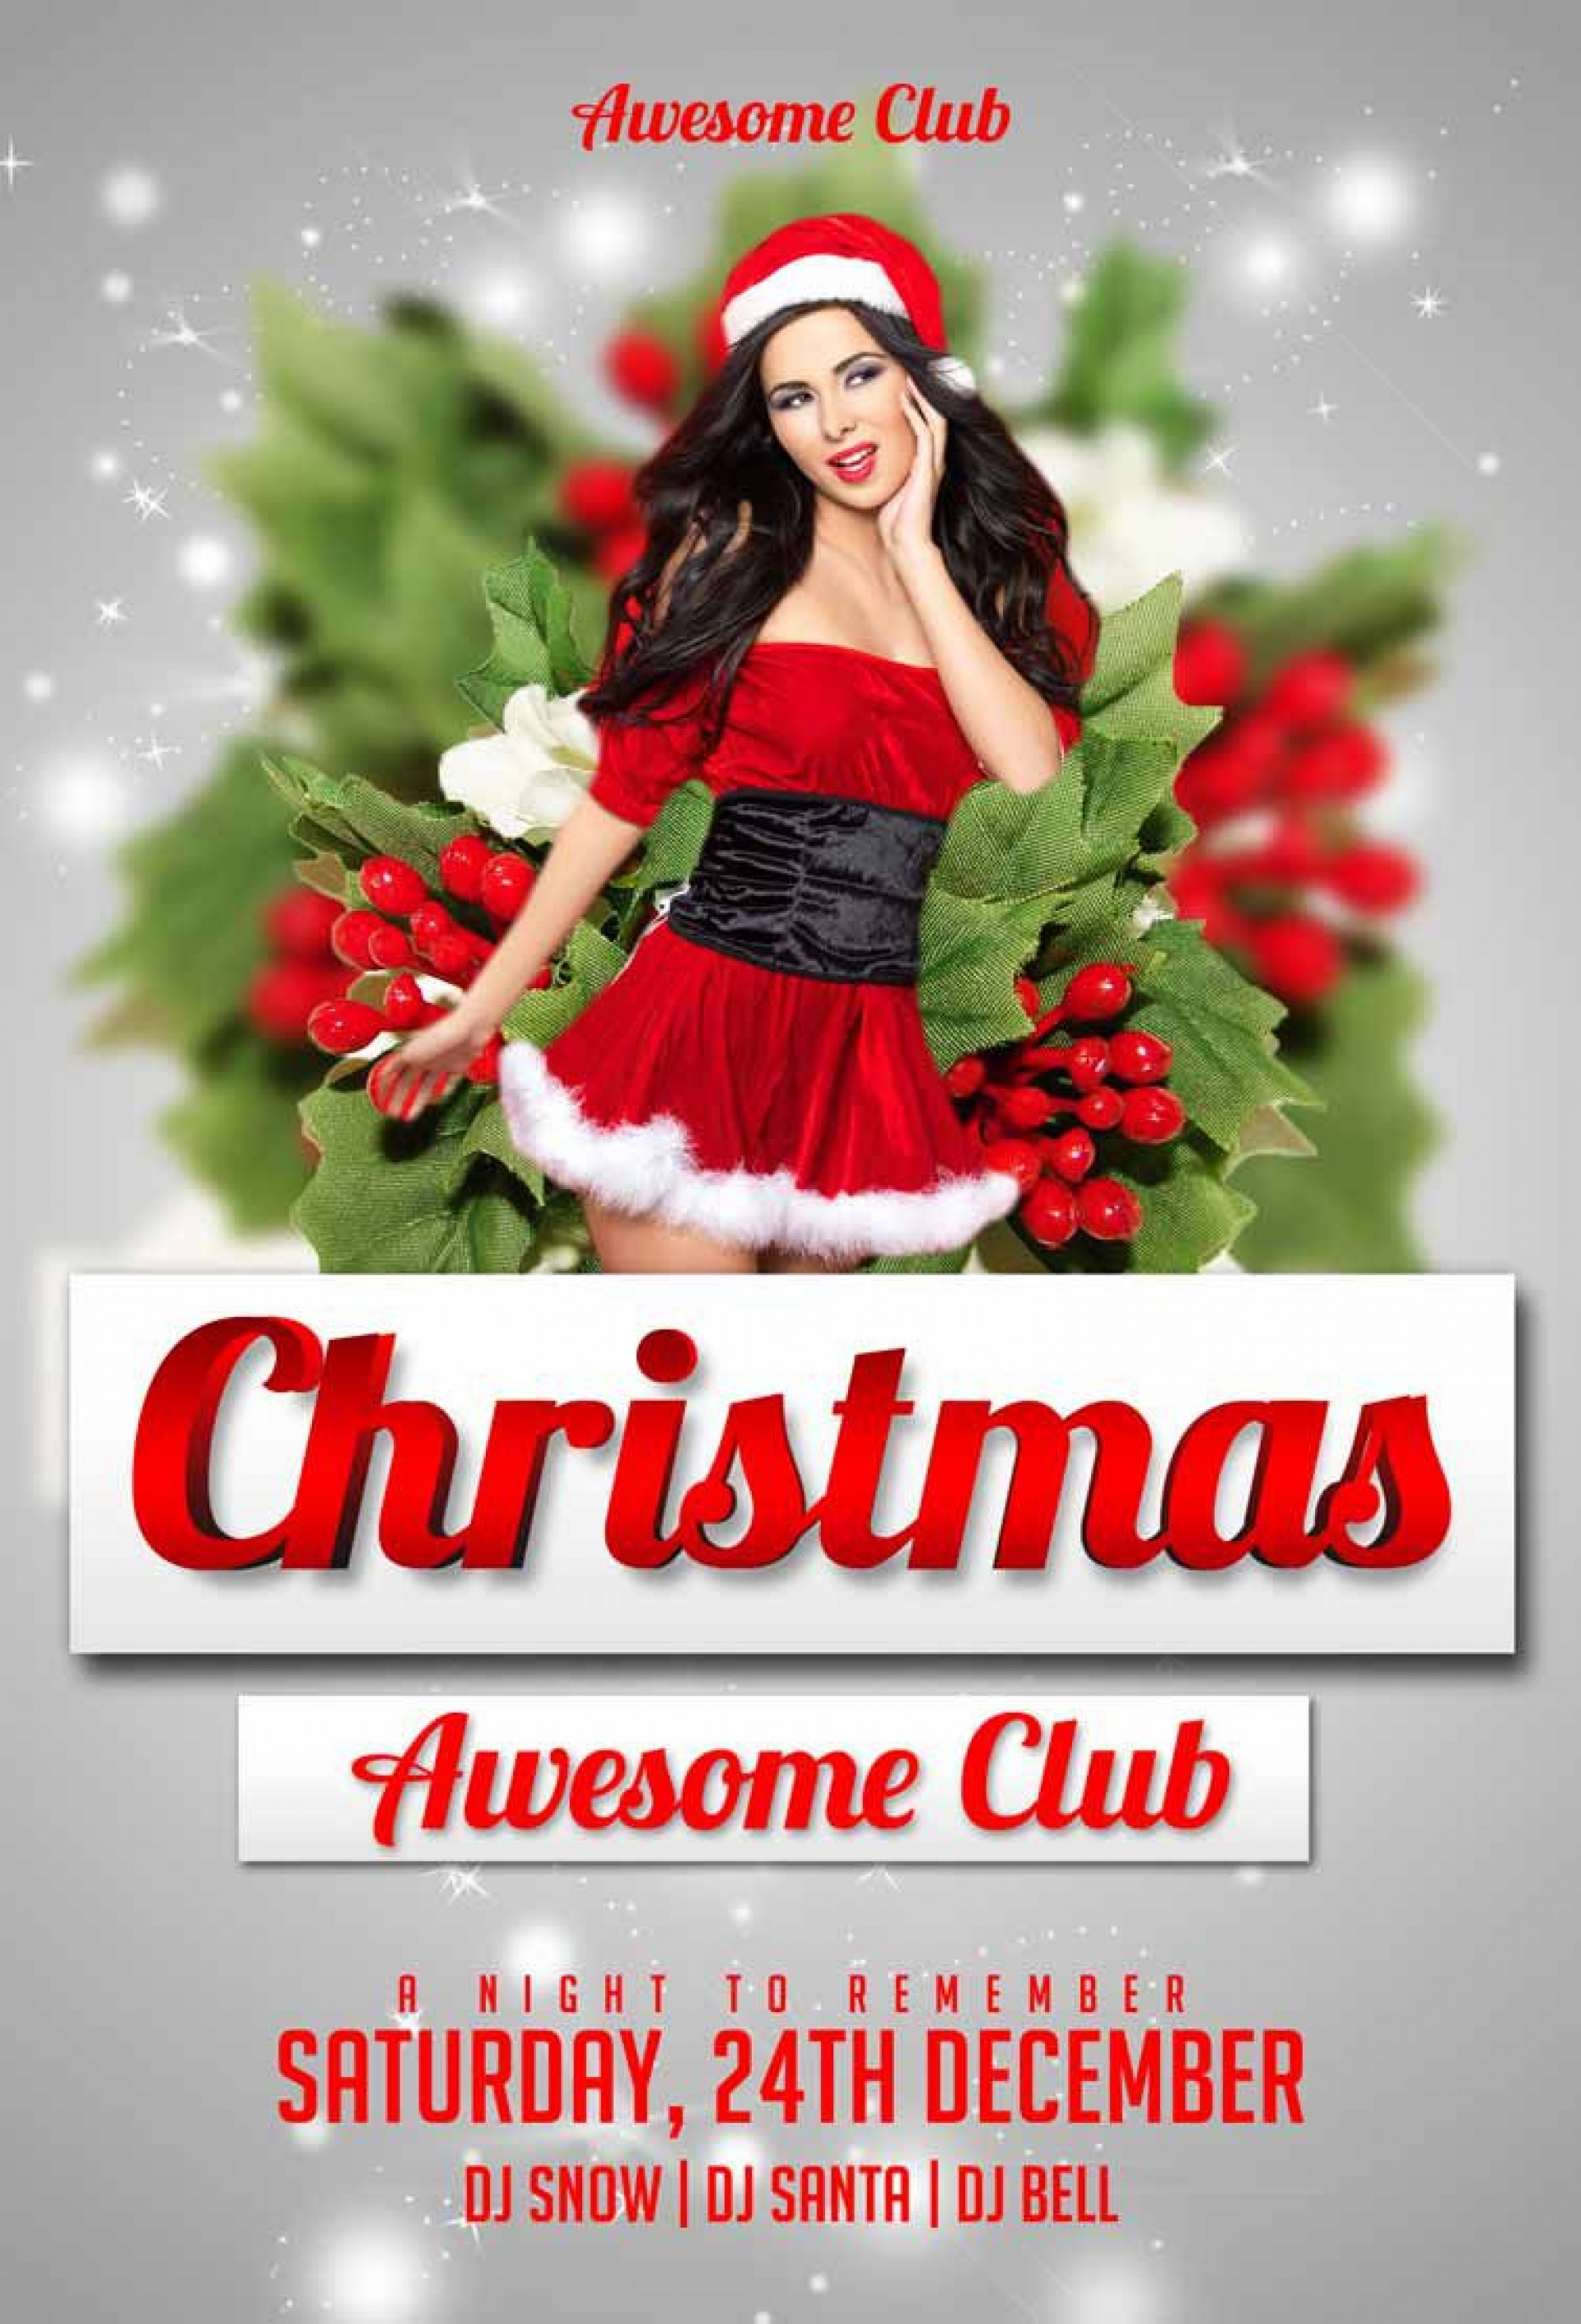 007 Astounding Free Christma Flyer Template High Definition  Templates Holiday Invitation Microsoft Word Psd1920